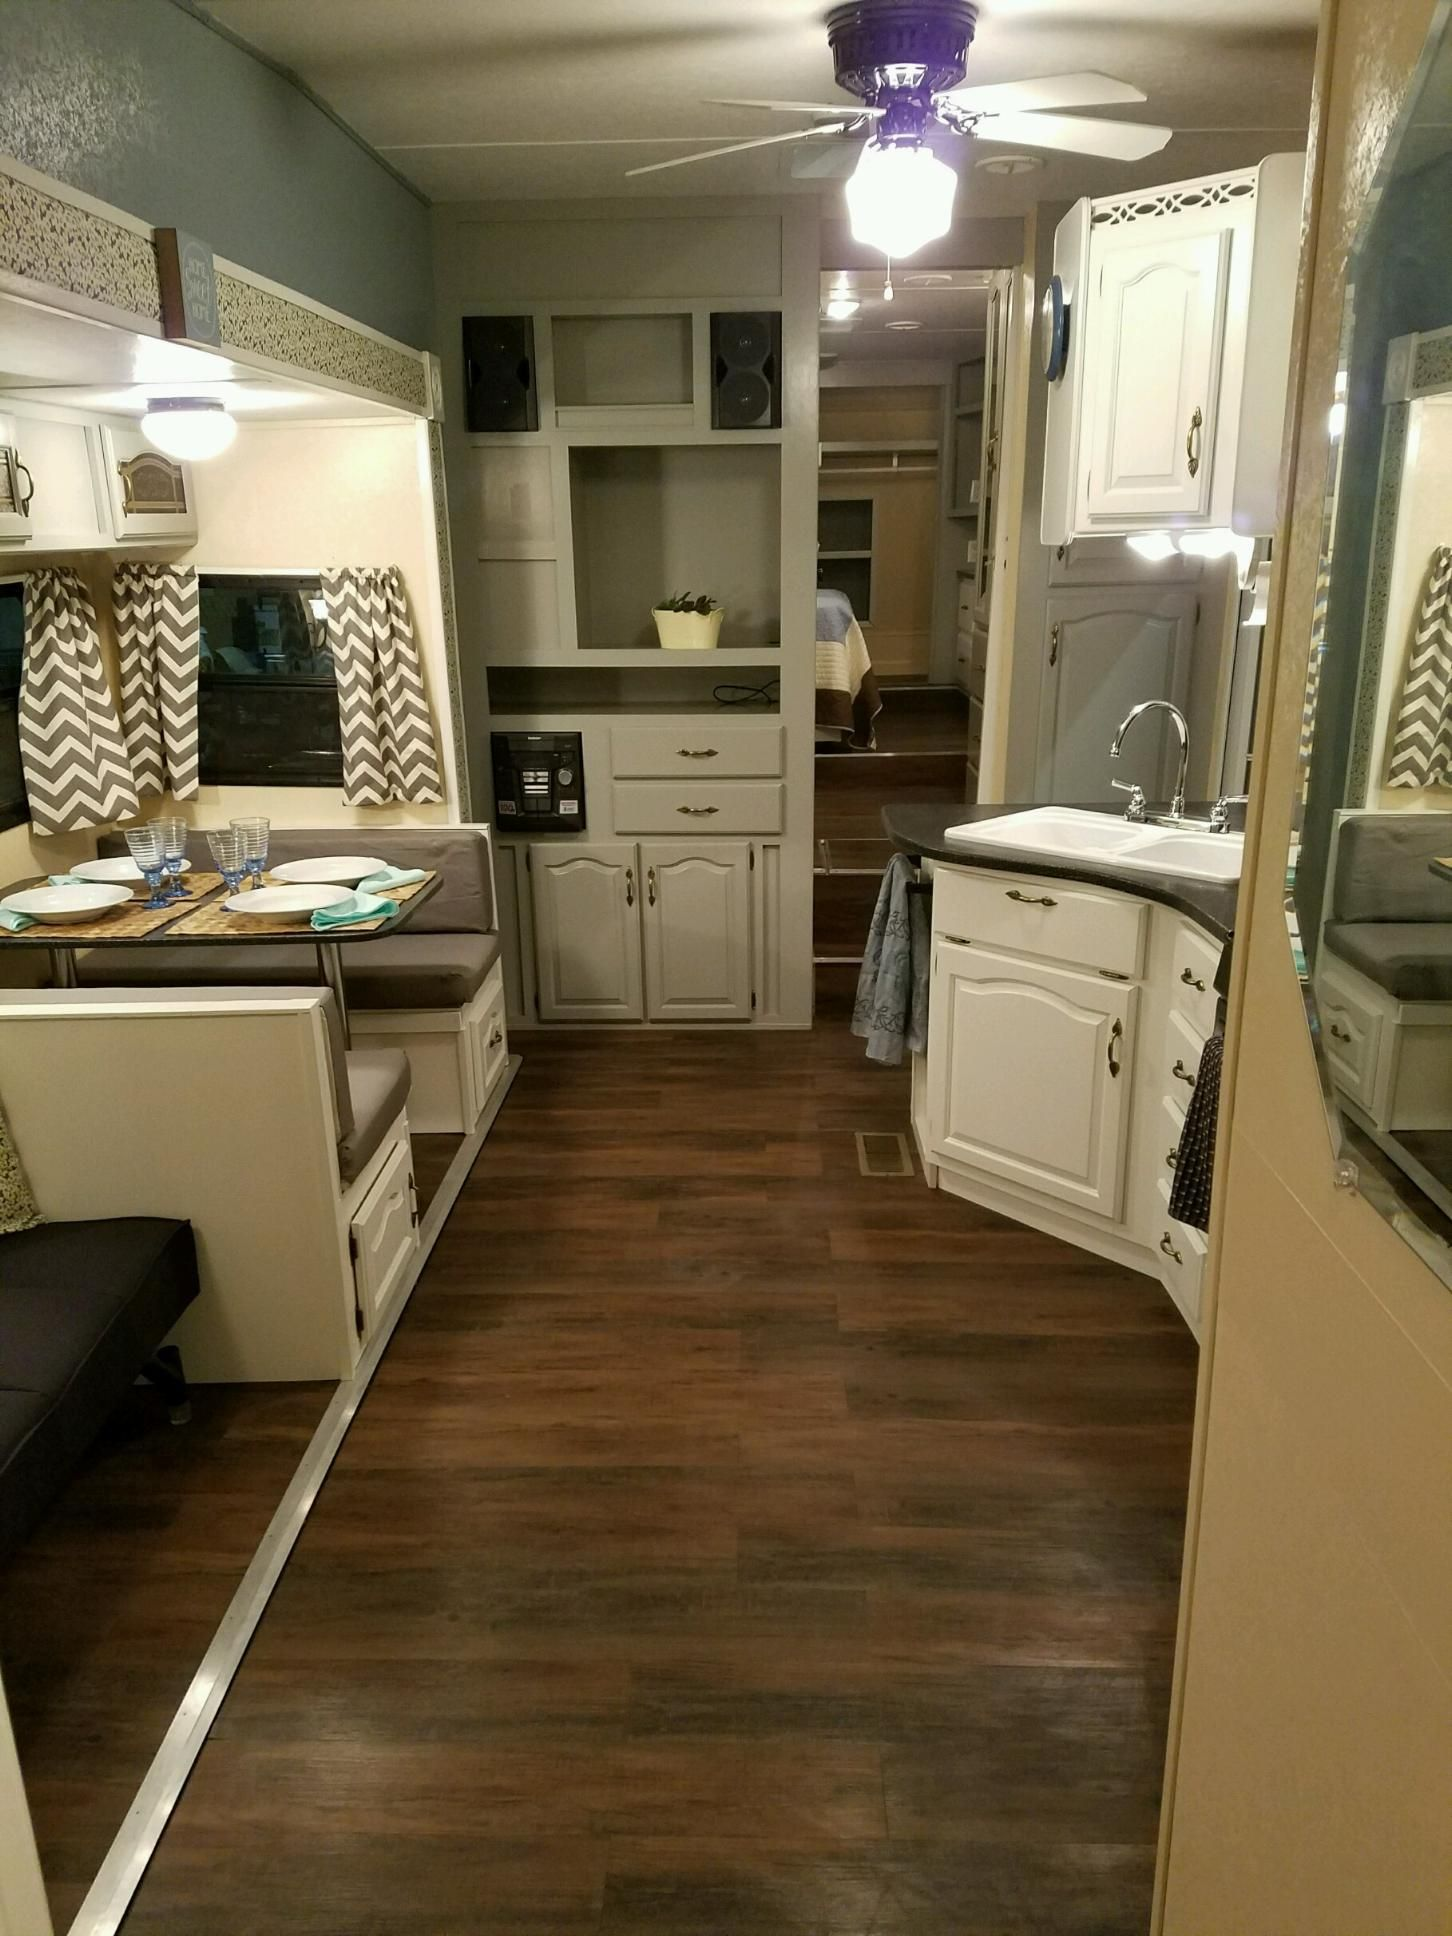 2 Slide Out Tiny House Newly Remodeled Rv For Sale In Billings Montana Tiny House Listings Camper Makeover Remodeled Campers Travel Trailer Remodel